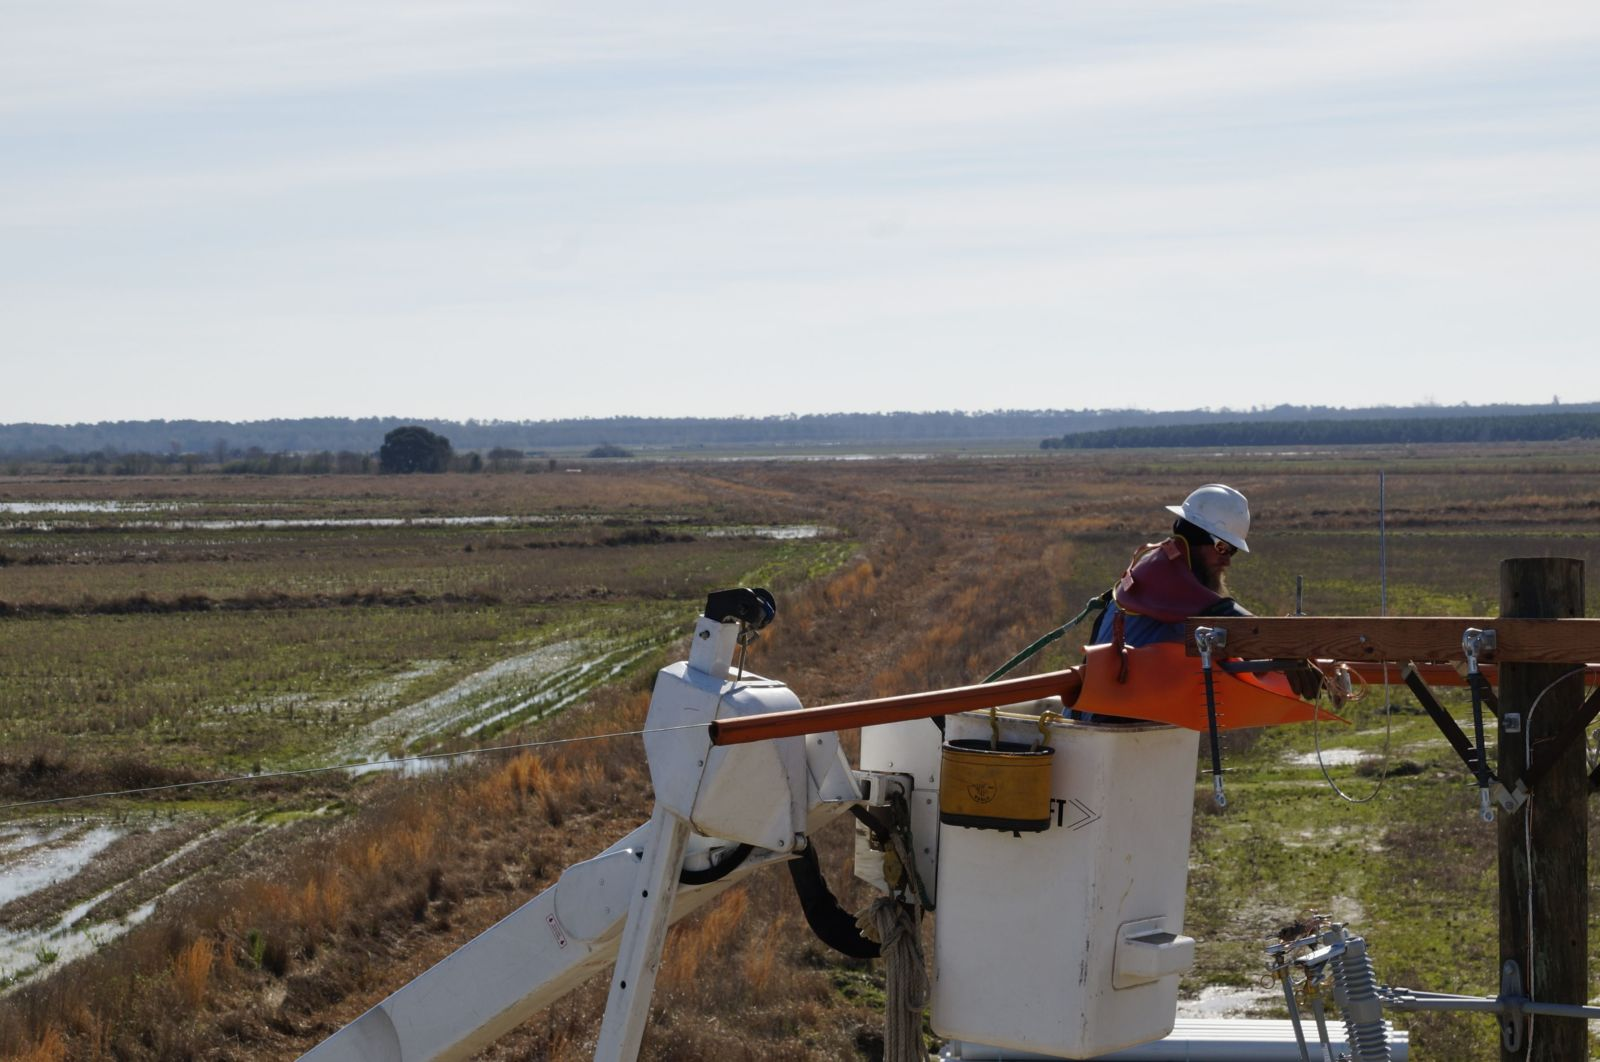 A lineman in a bucket working on power lines with Louisiana landscape in the background